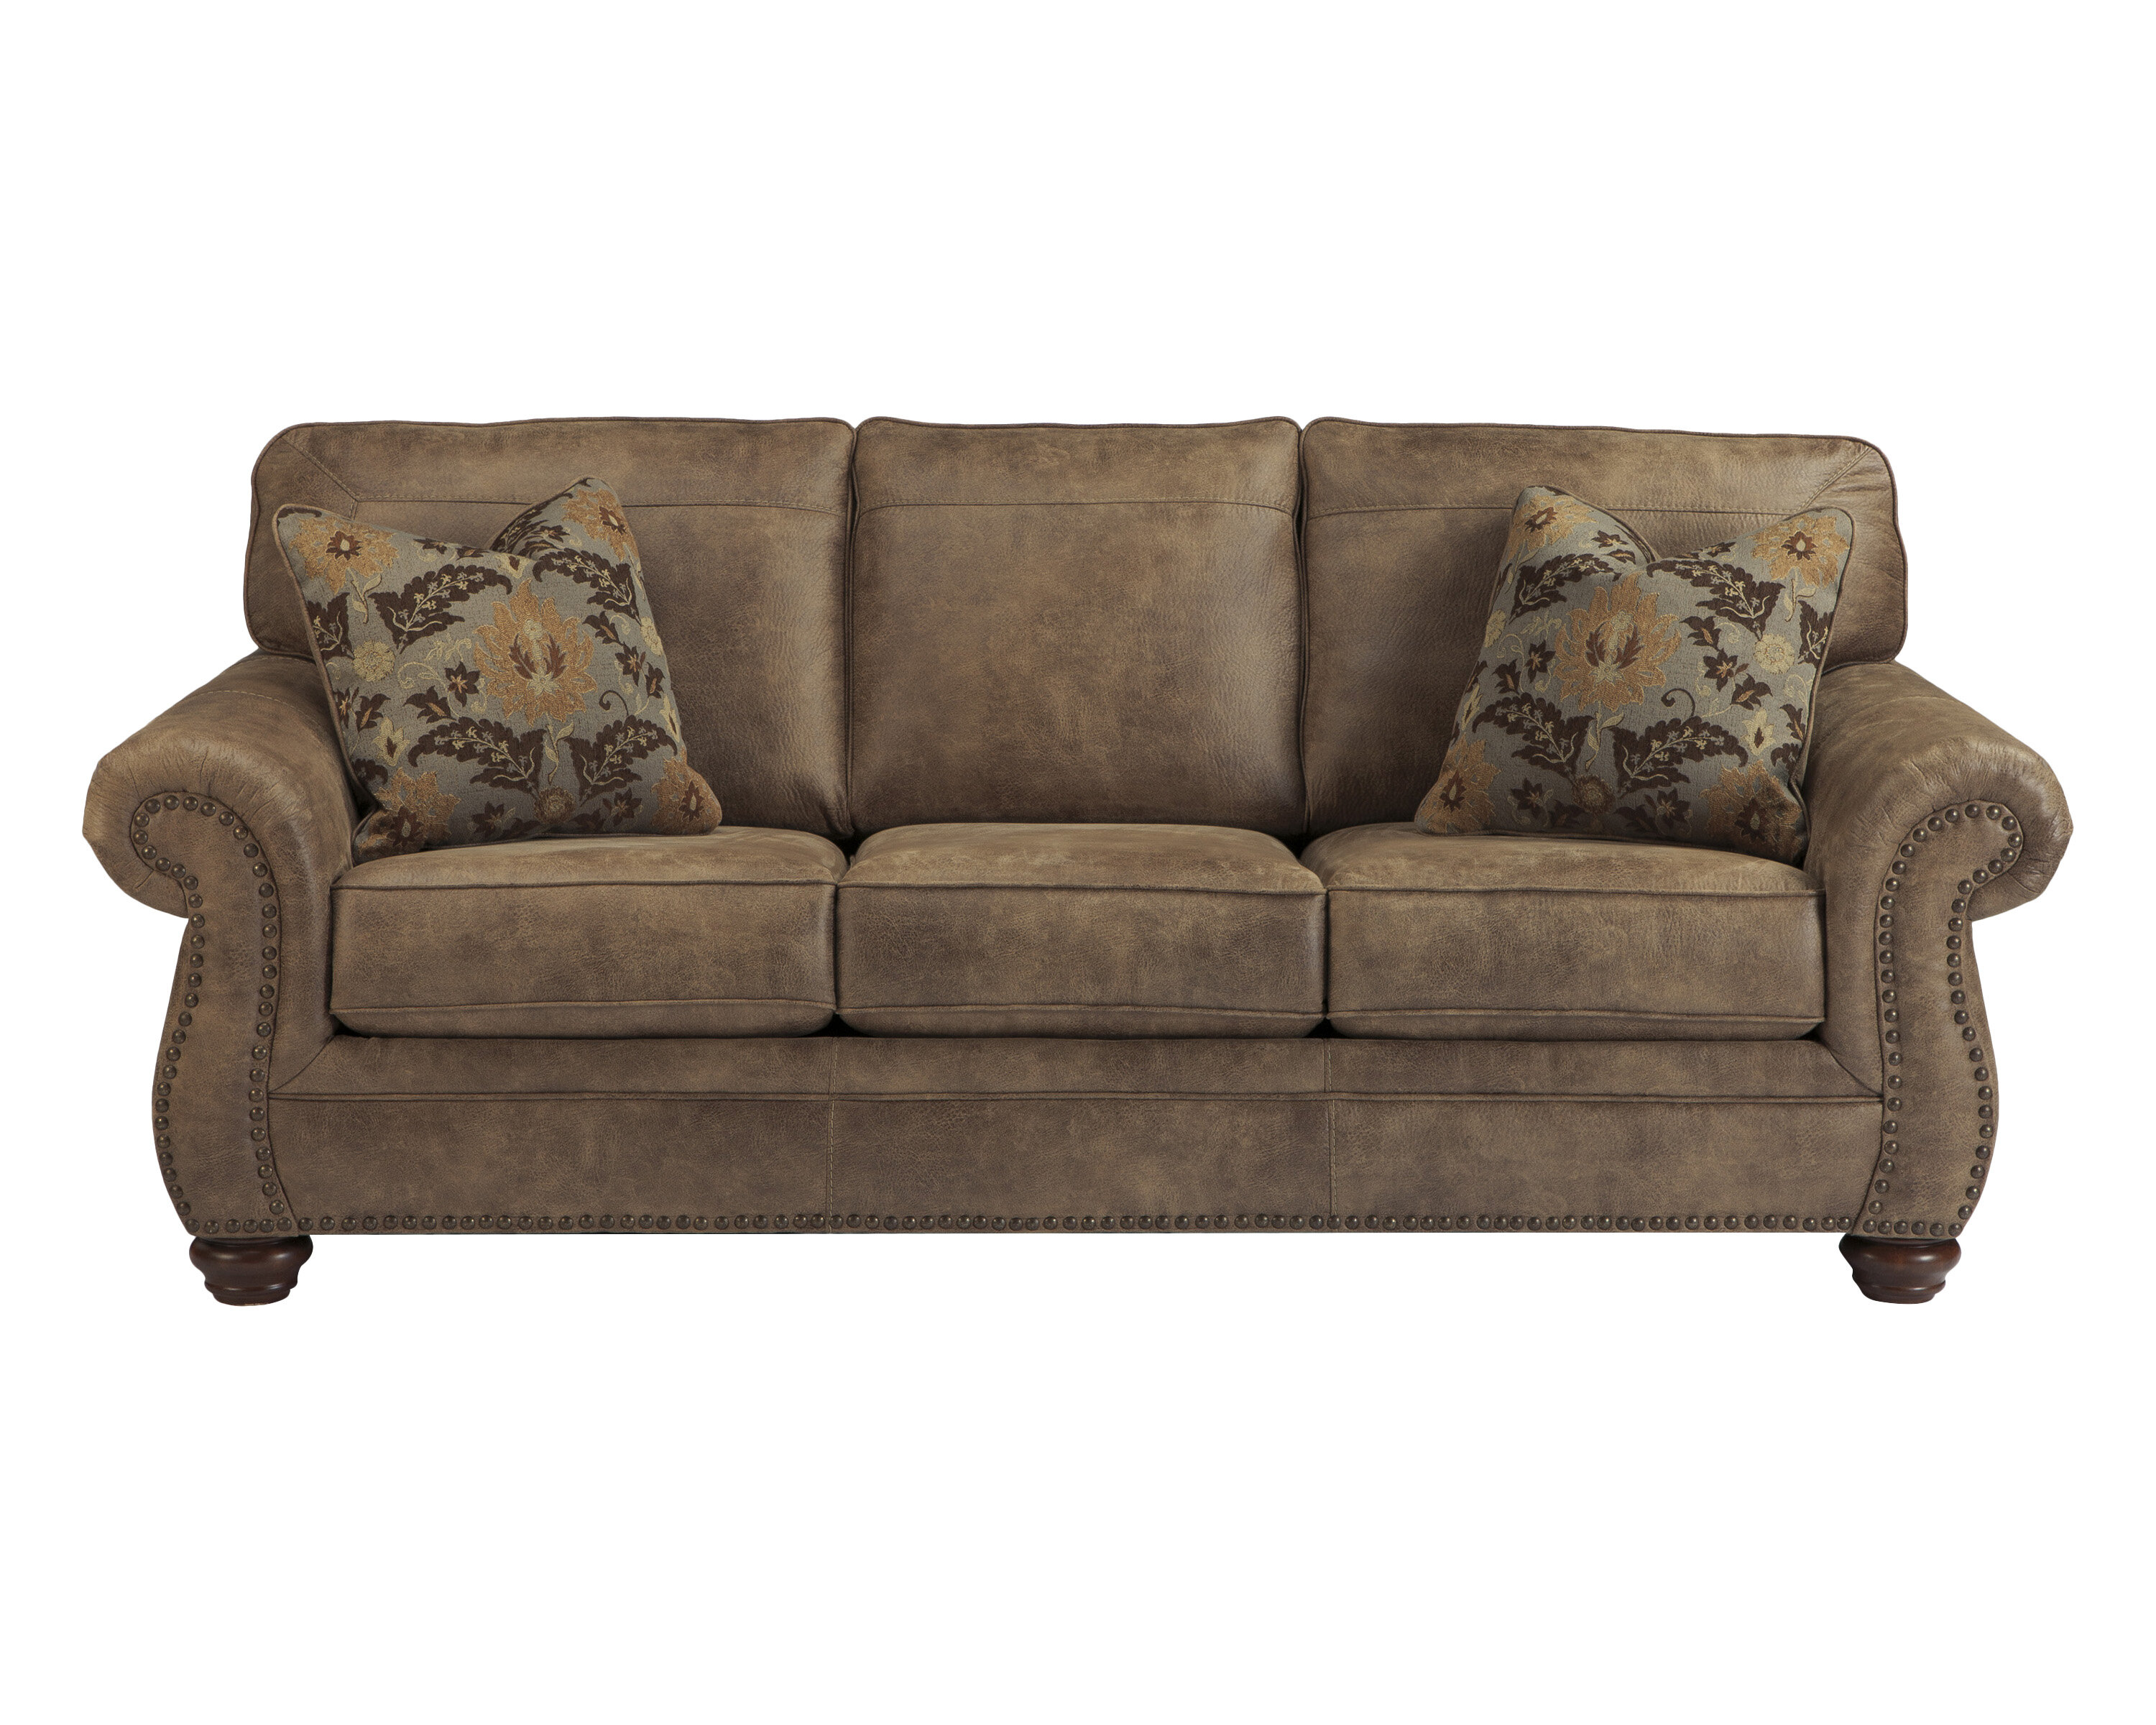 bed set sofa fred couch home bookshelf meyer images uncategorized futon priceplace gallery and